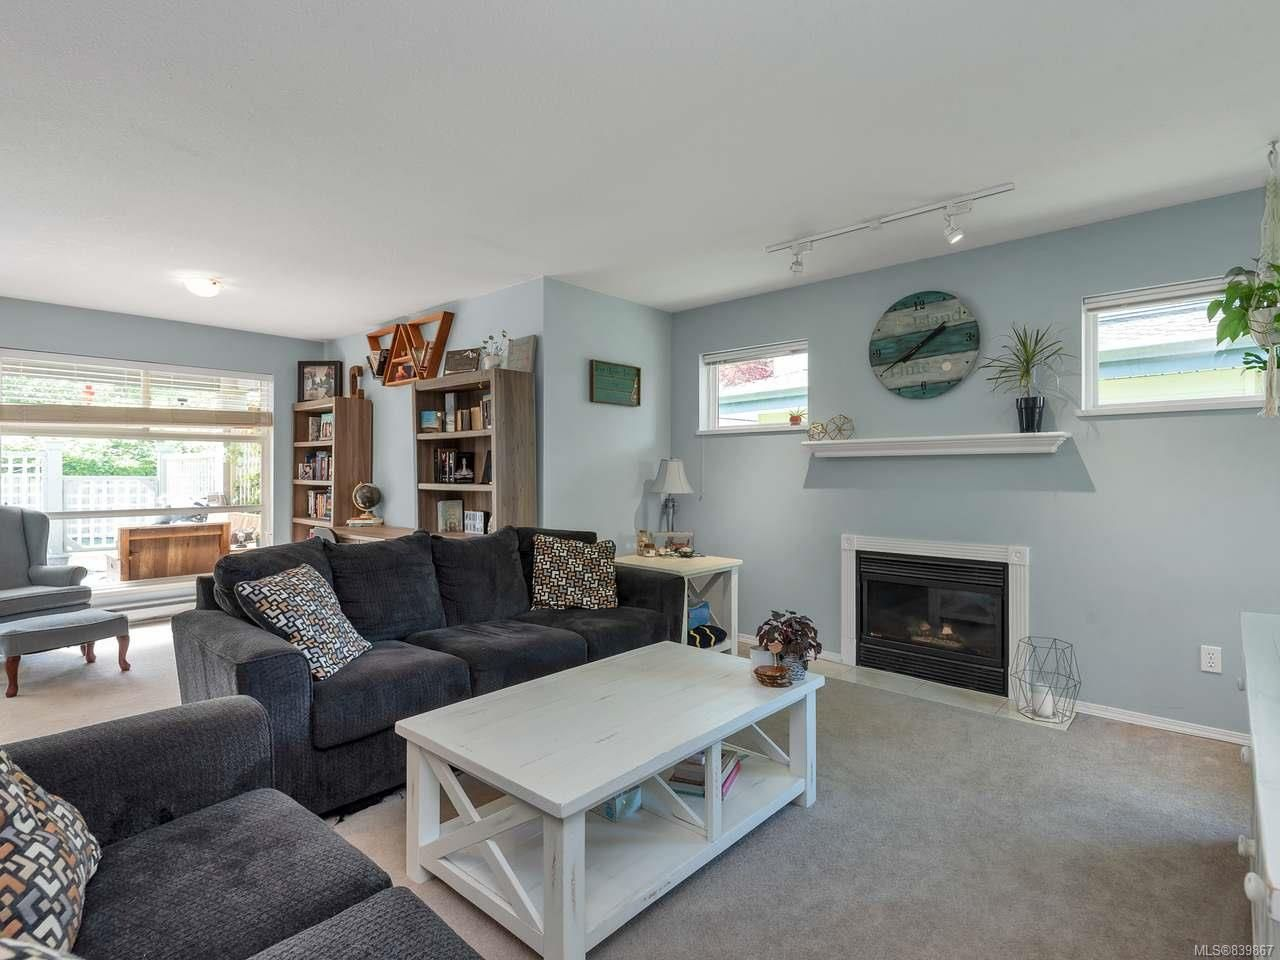 Photo 22: Photos: 21 2750 Denman St in CAMPBELL RIVER: CR Willow Point Row/Townhouse for sale (Campbell River)  : MLS®# 839867